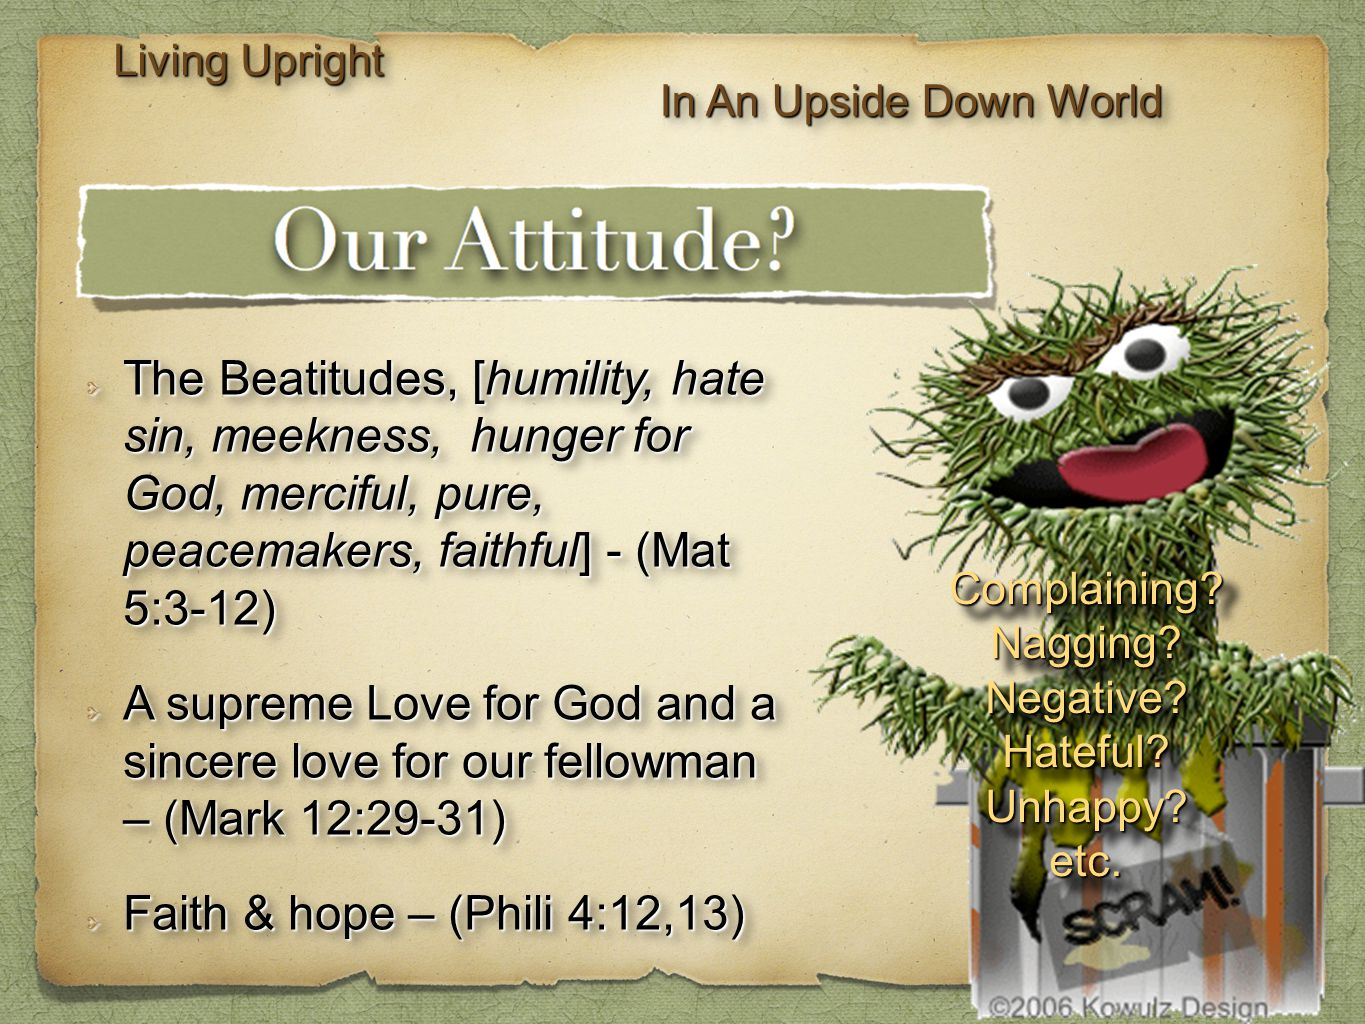 Living Upright In An Upside Down World The Beatitudes, [humility, hate sin, meekness, hunger for God, merciful, pure, peacemakers, faithful] - (Mat 5:3-12) A supreme Love for God and a sincere love for our fellowman – (Mark 12:29-31) Faith & hope – (Phili 4:12,13) The Beatitudes, [humility, hate sin, meekness, hunger for God, merciful, pure, peacemakers, faithful] - (Mat 5:3-12) A supreme Love for God and a sincere love for our fellowman – (Mark 12:29-31) Faith & hope – (Phili 4:12,13) Complaining Nagging Negative Hateful Unhappy etc.Complaining Nagging Negative Hateful Unhappy etc.